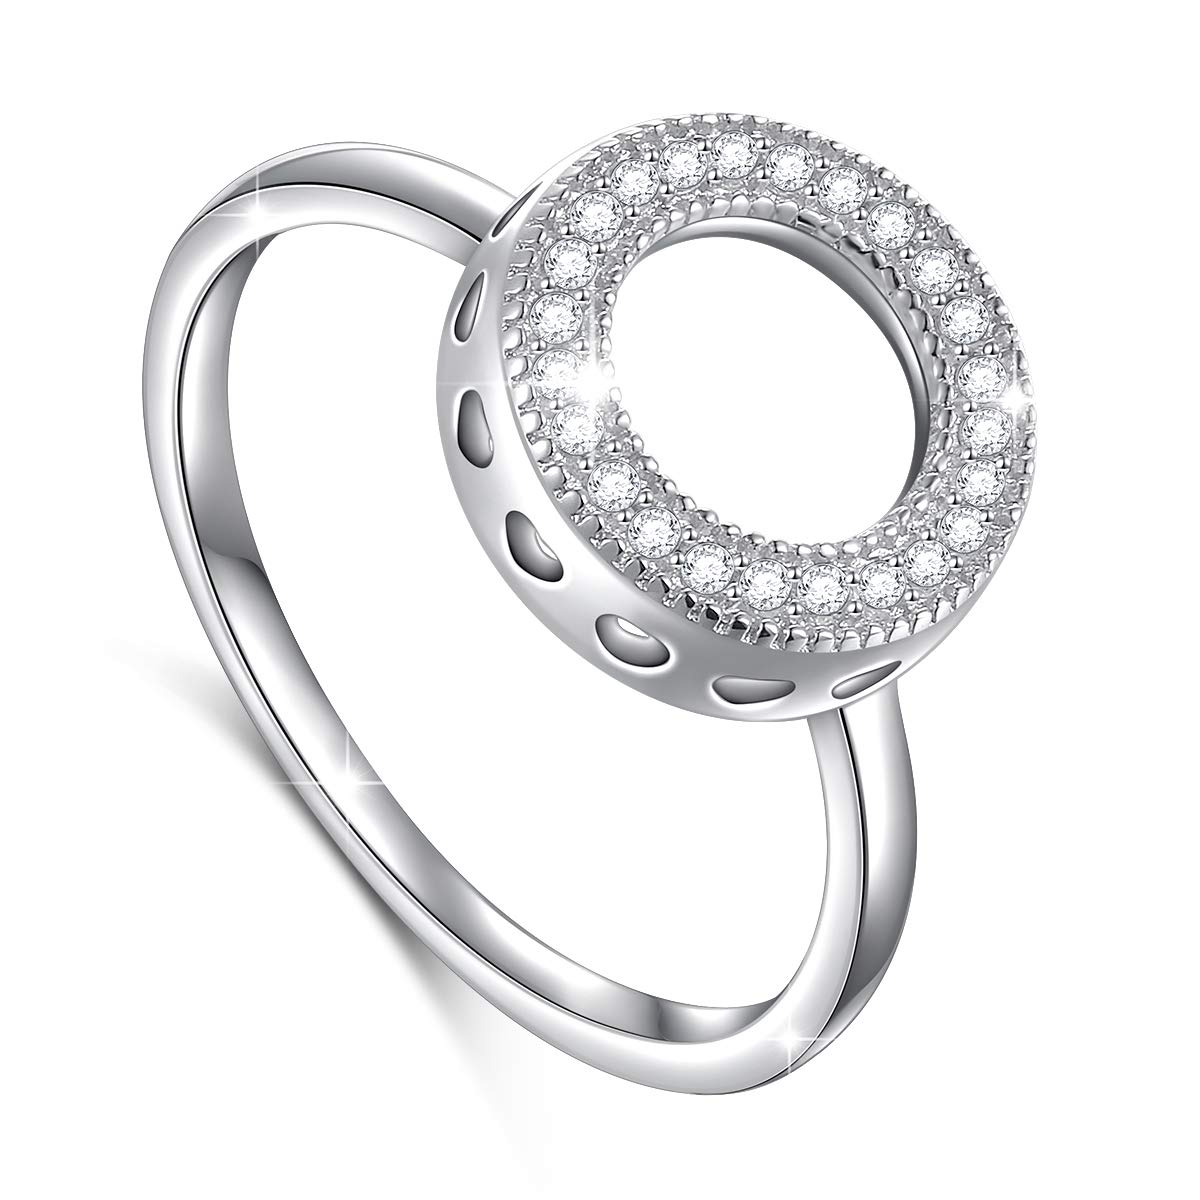 DAOCHONG Minimalist Jewelry Simple 925 Sterling Silver Cz Open Circle Ring for Women Ladies Girls Birthday Gift